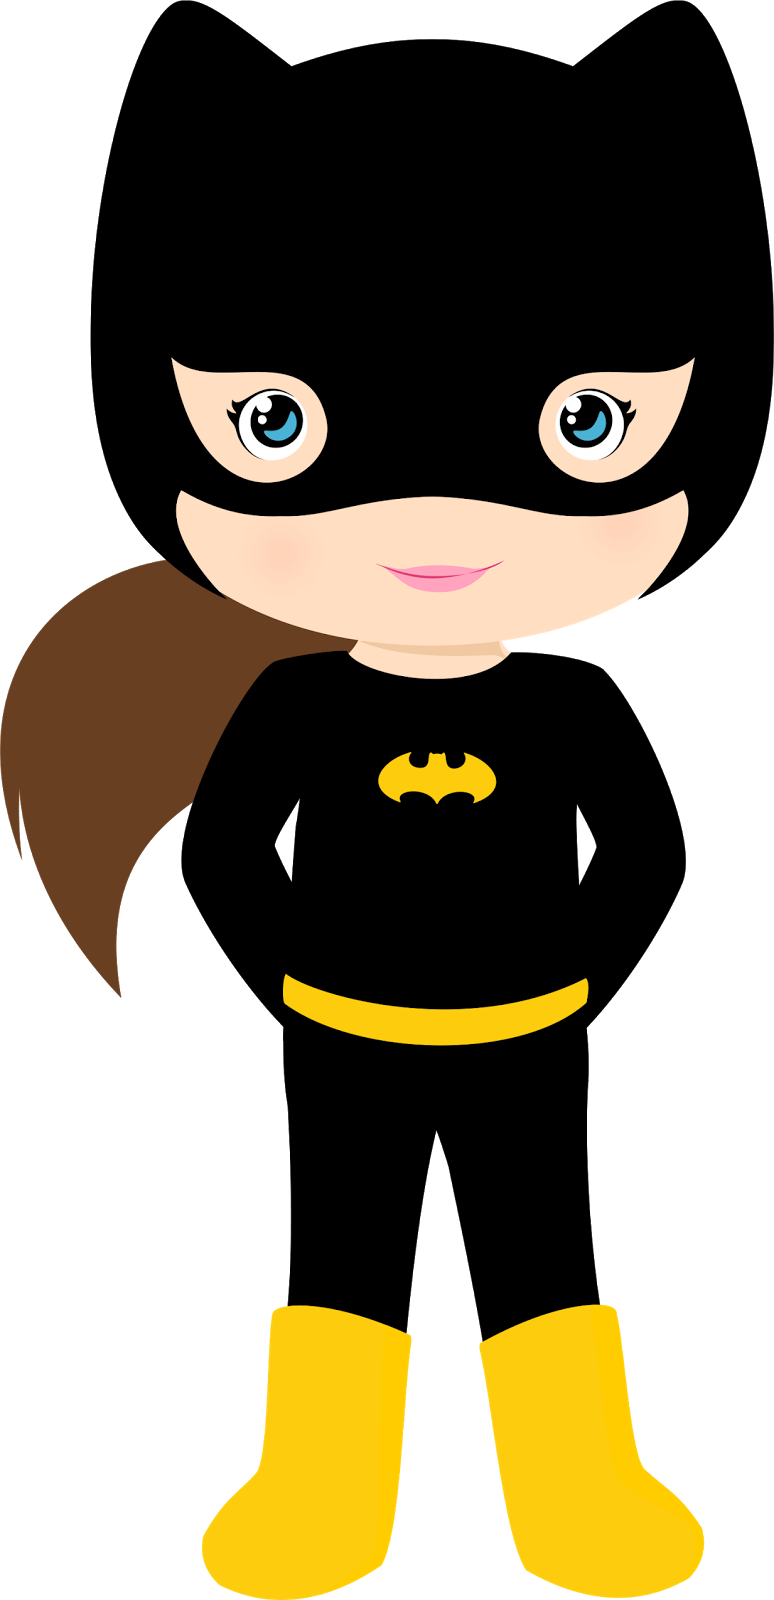 774x1600 Characters Of Batman Kids Version Clip Art.